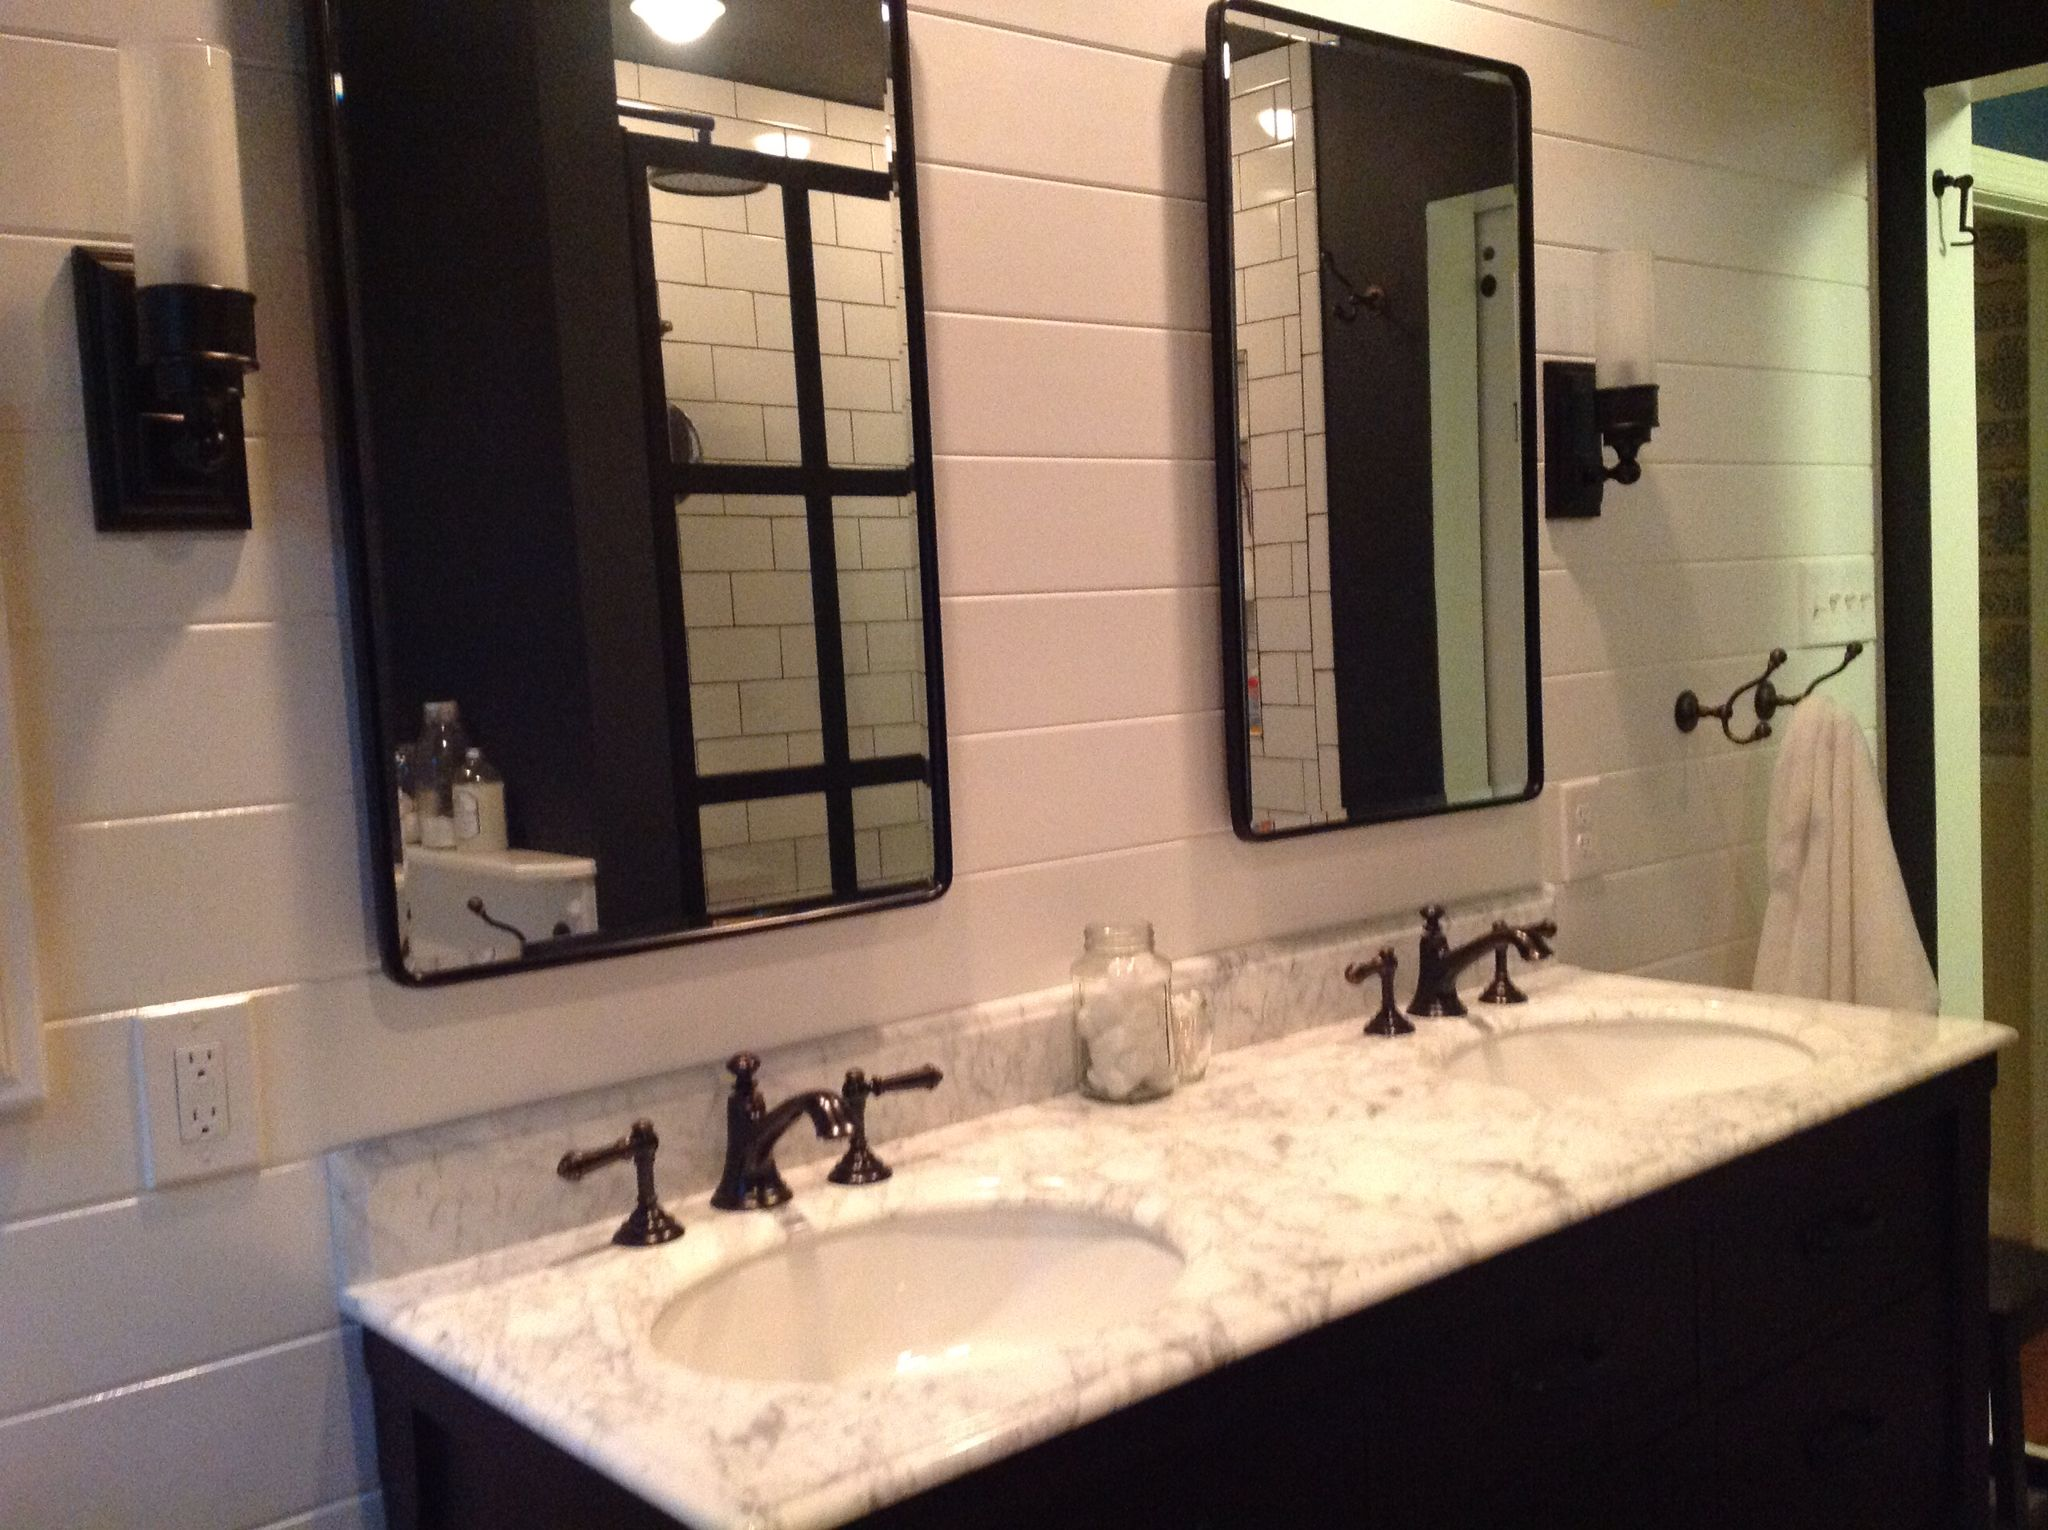 After Dark Stained Double Sink With Quartz Counter And Pottery Barn Vintage Recess Vintage Medicine Cabinets Recessed Medicine Cabinet Master Bath Renovation